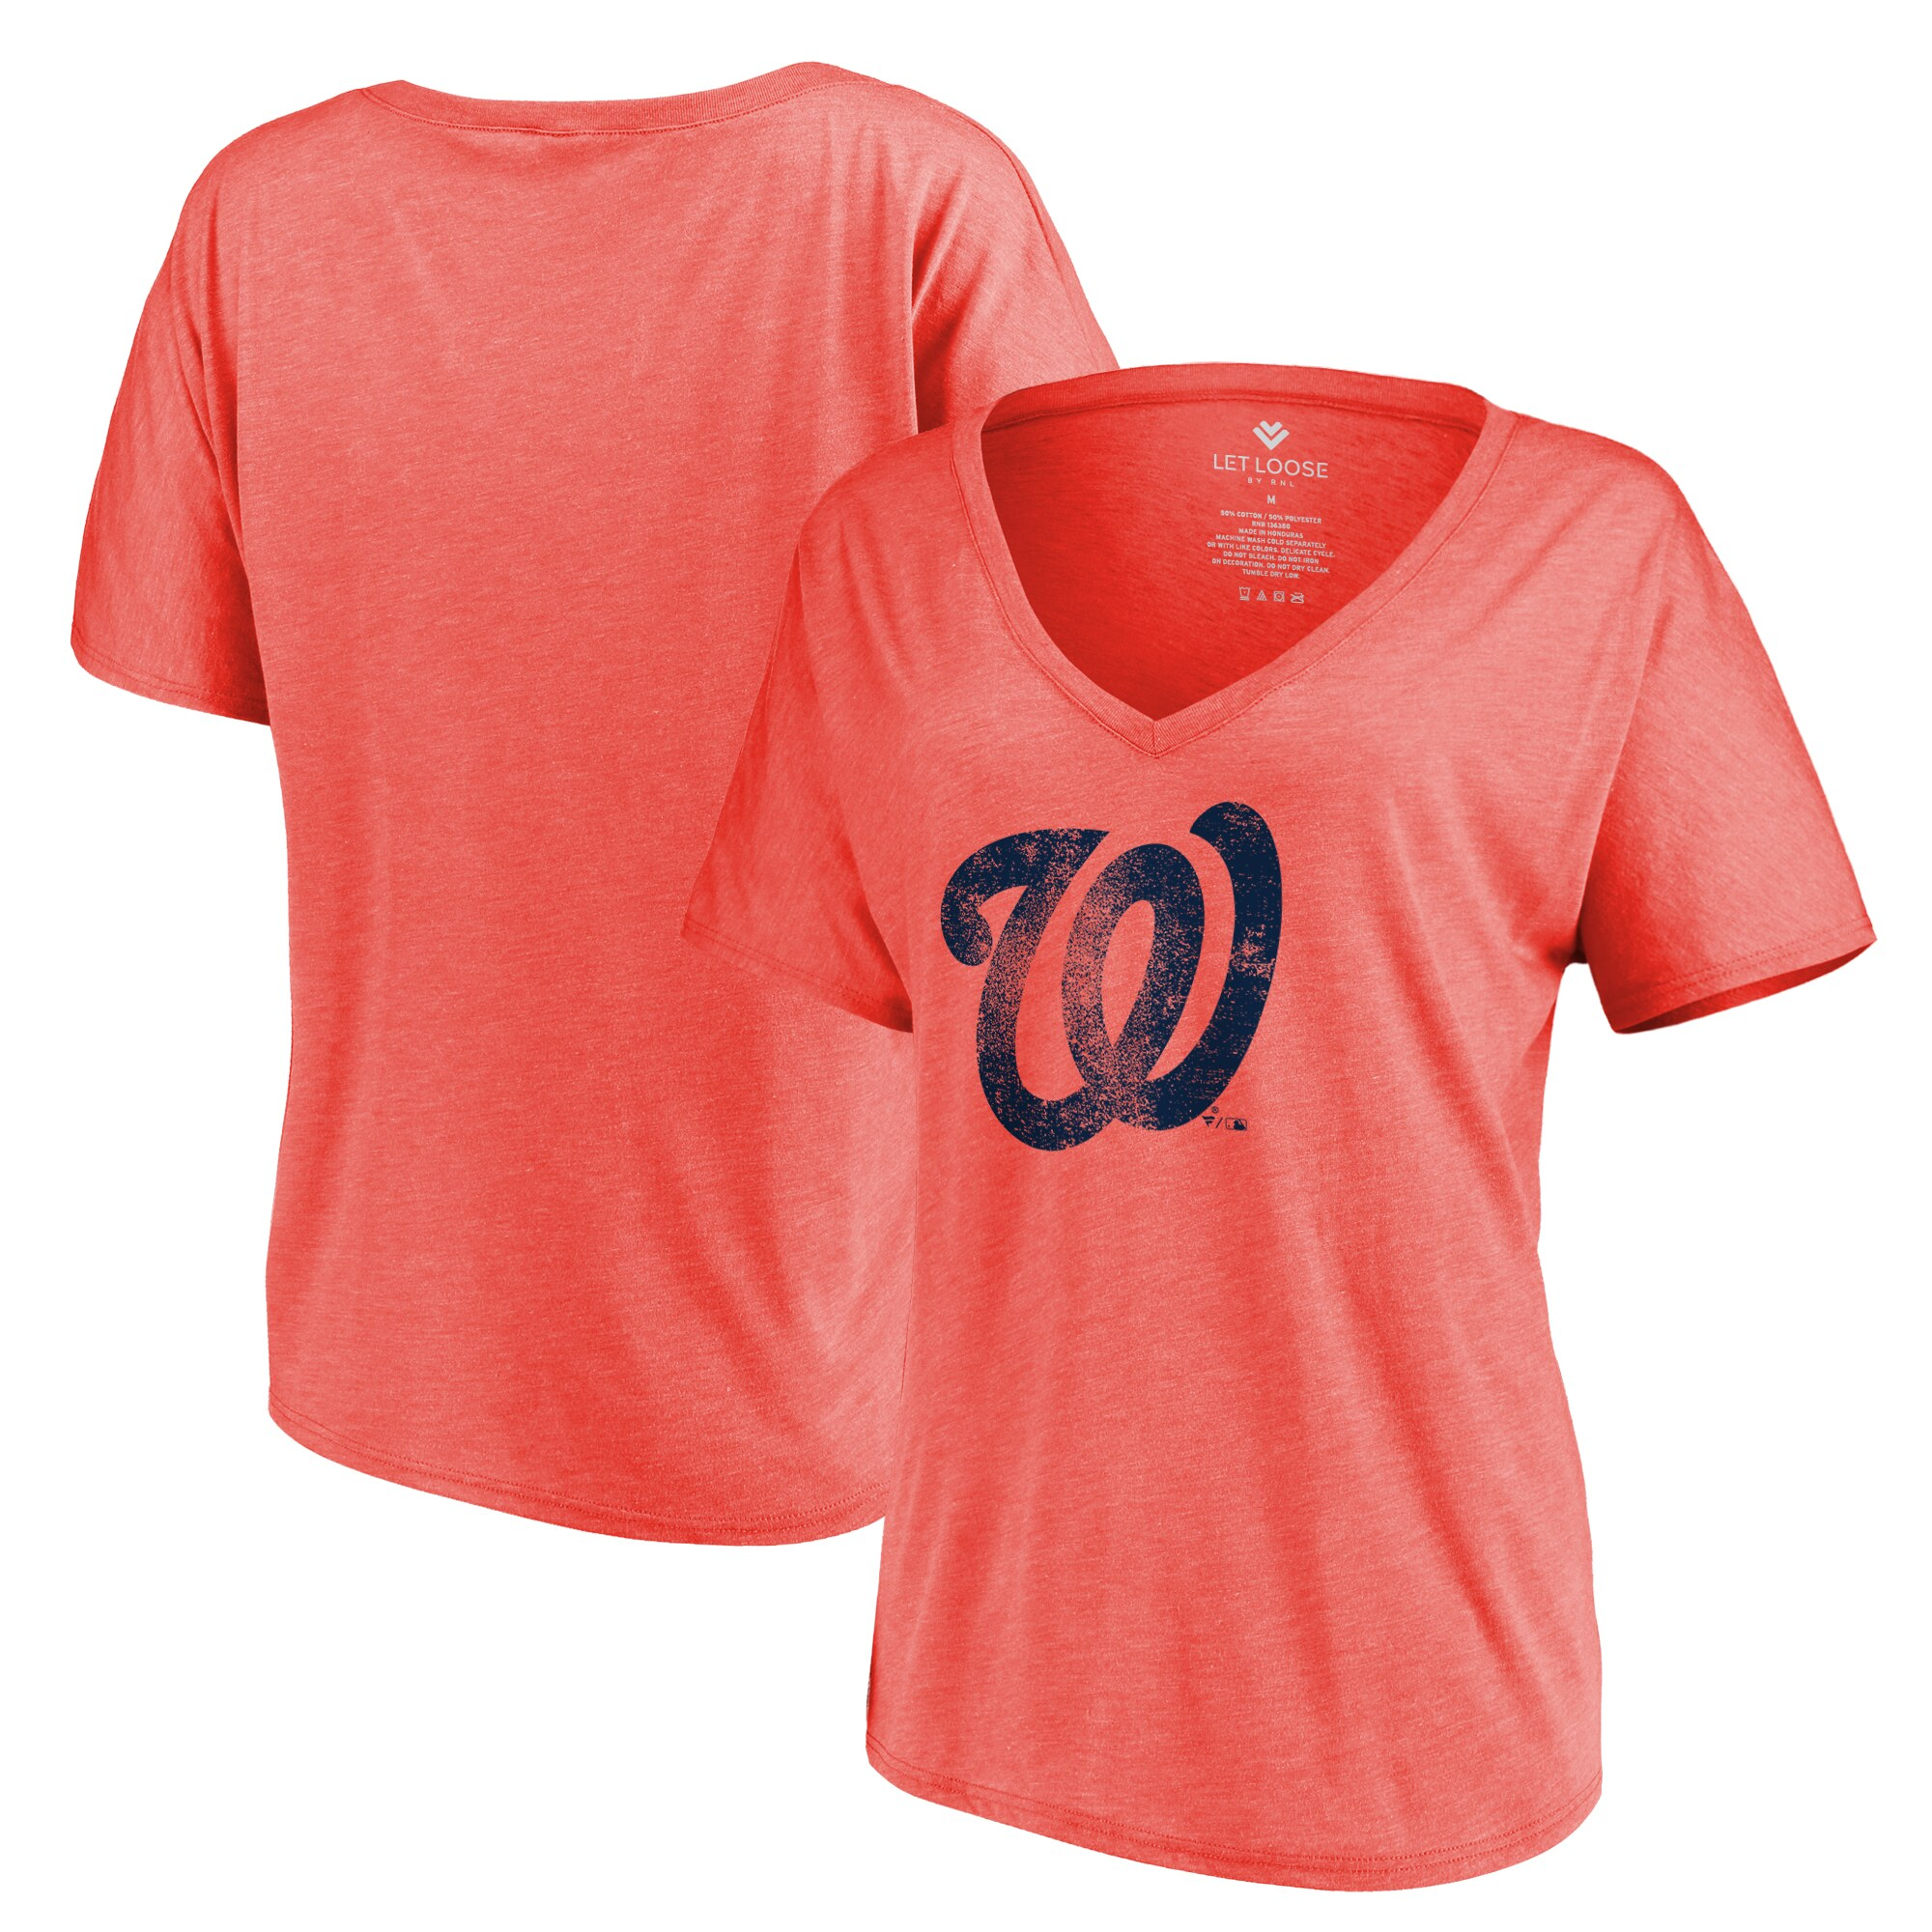 Washington Nationals Let Loose by RNL Women's Distressed Primary Logo T-Shirt - Red